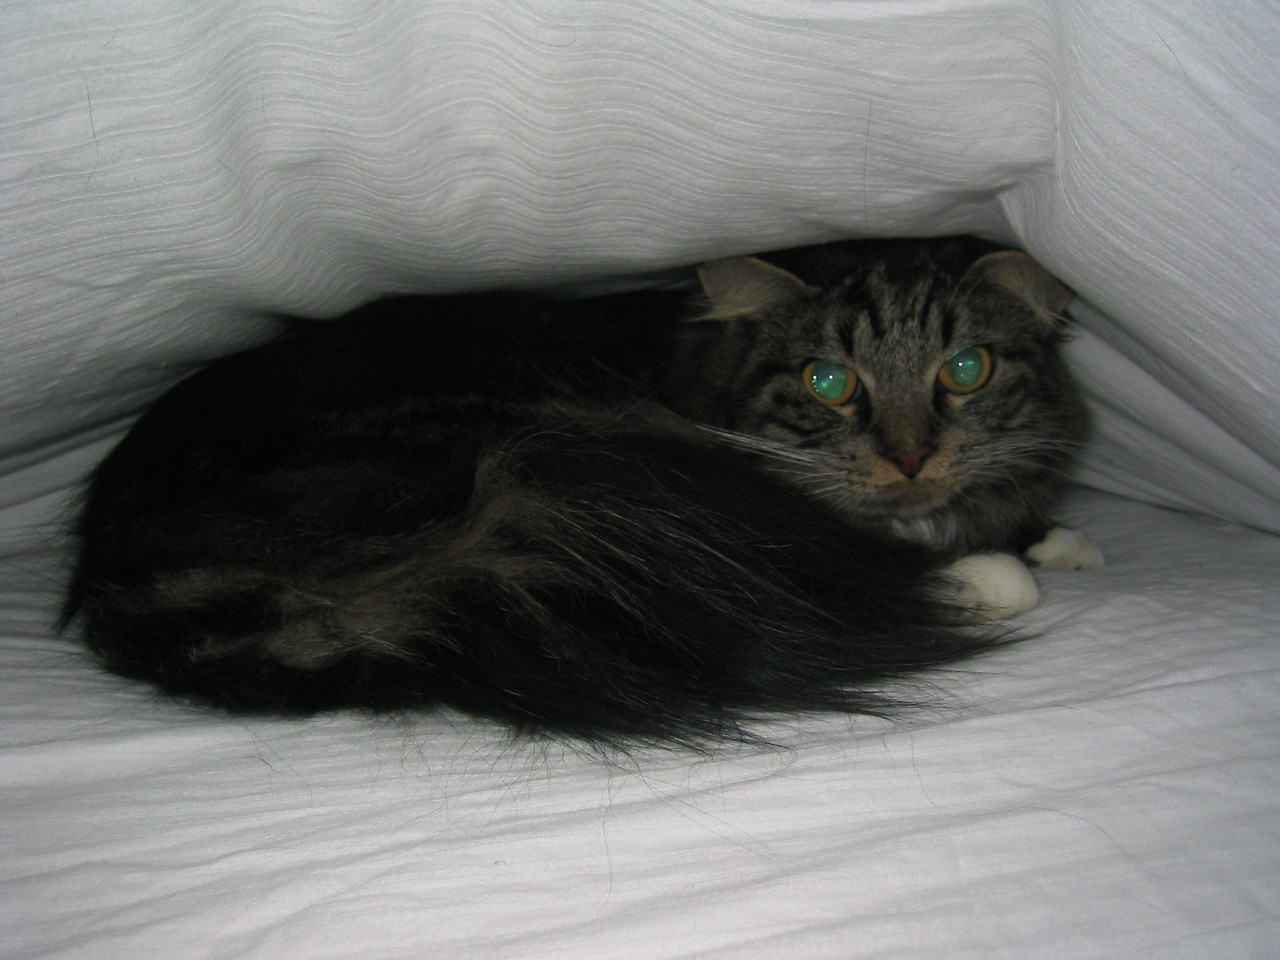 2004 01 02 Friday - Hobbit under the covers - with flash